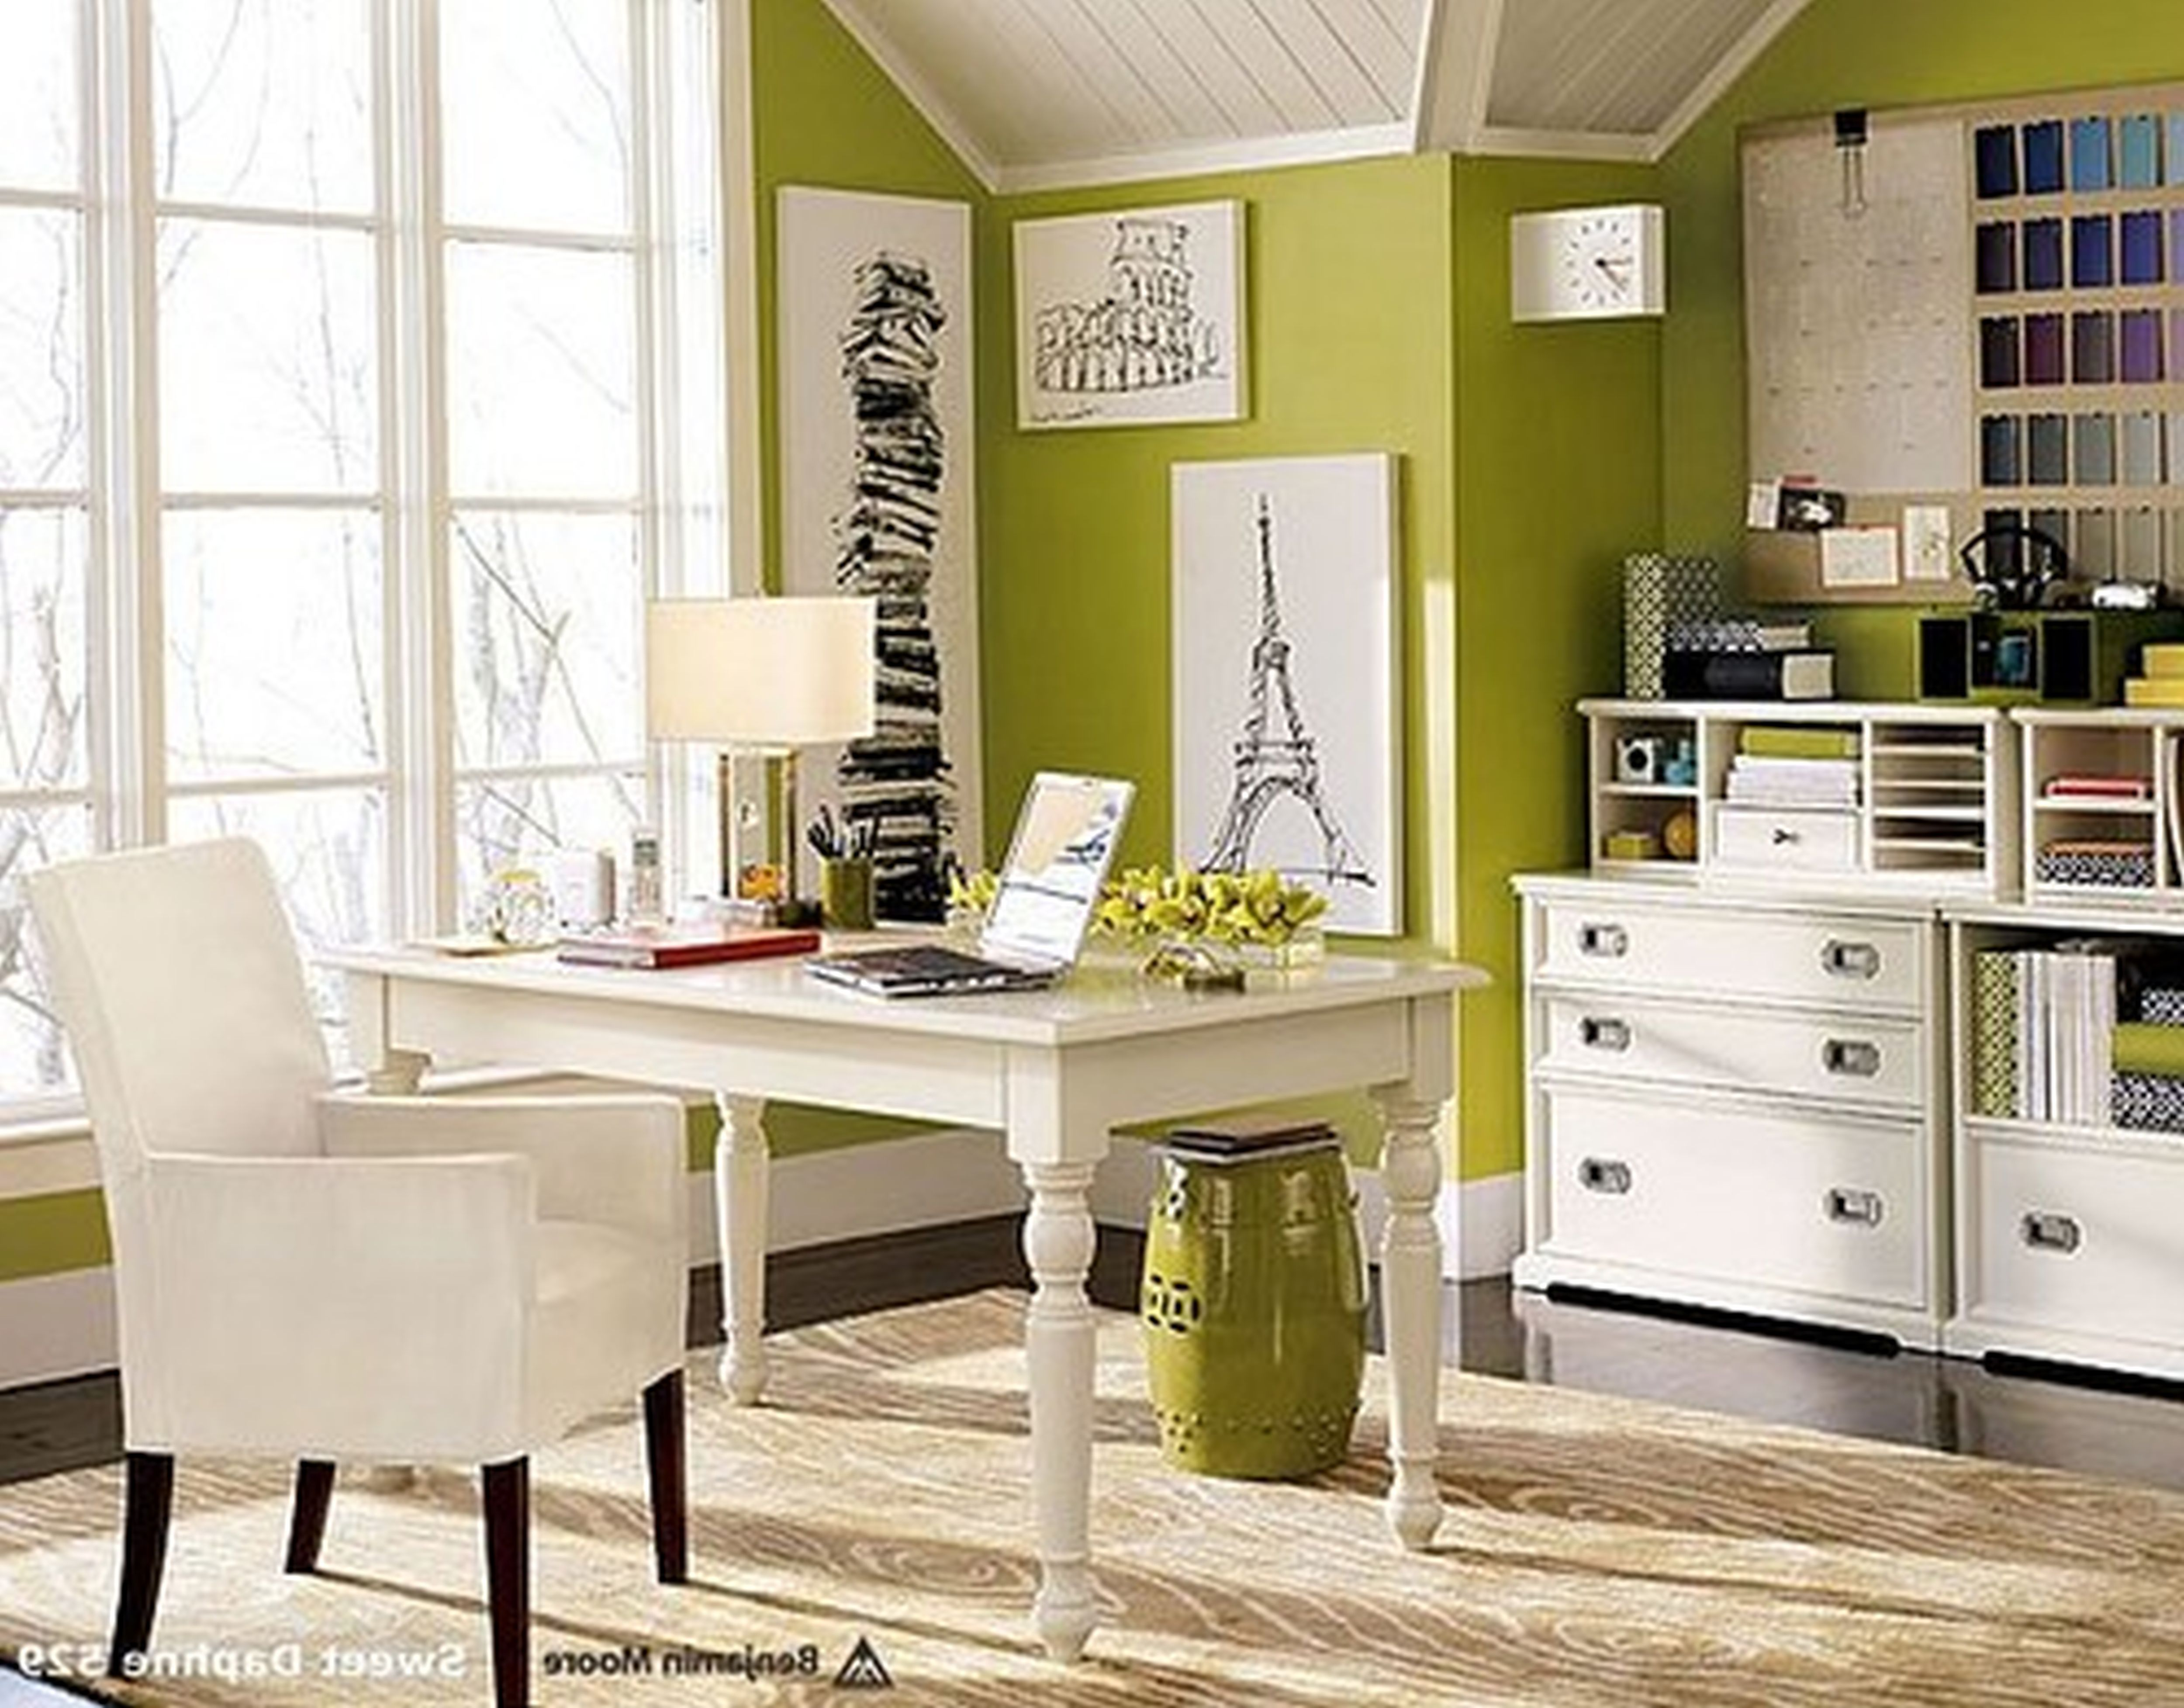 Appealing White Table And Chair Near Clic Cabinets For Old Fashioned Office Decor Ideas